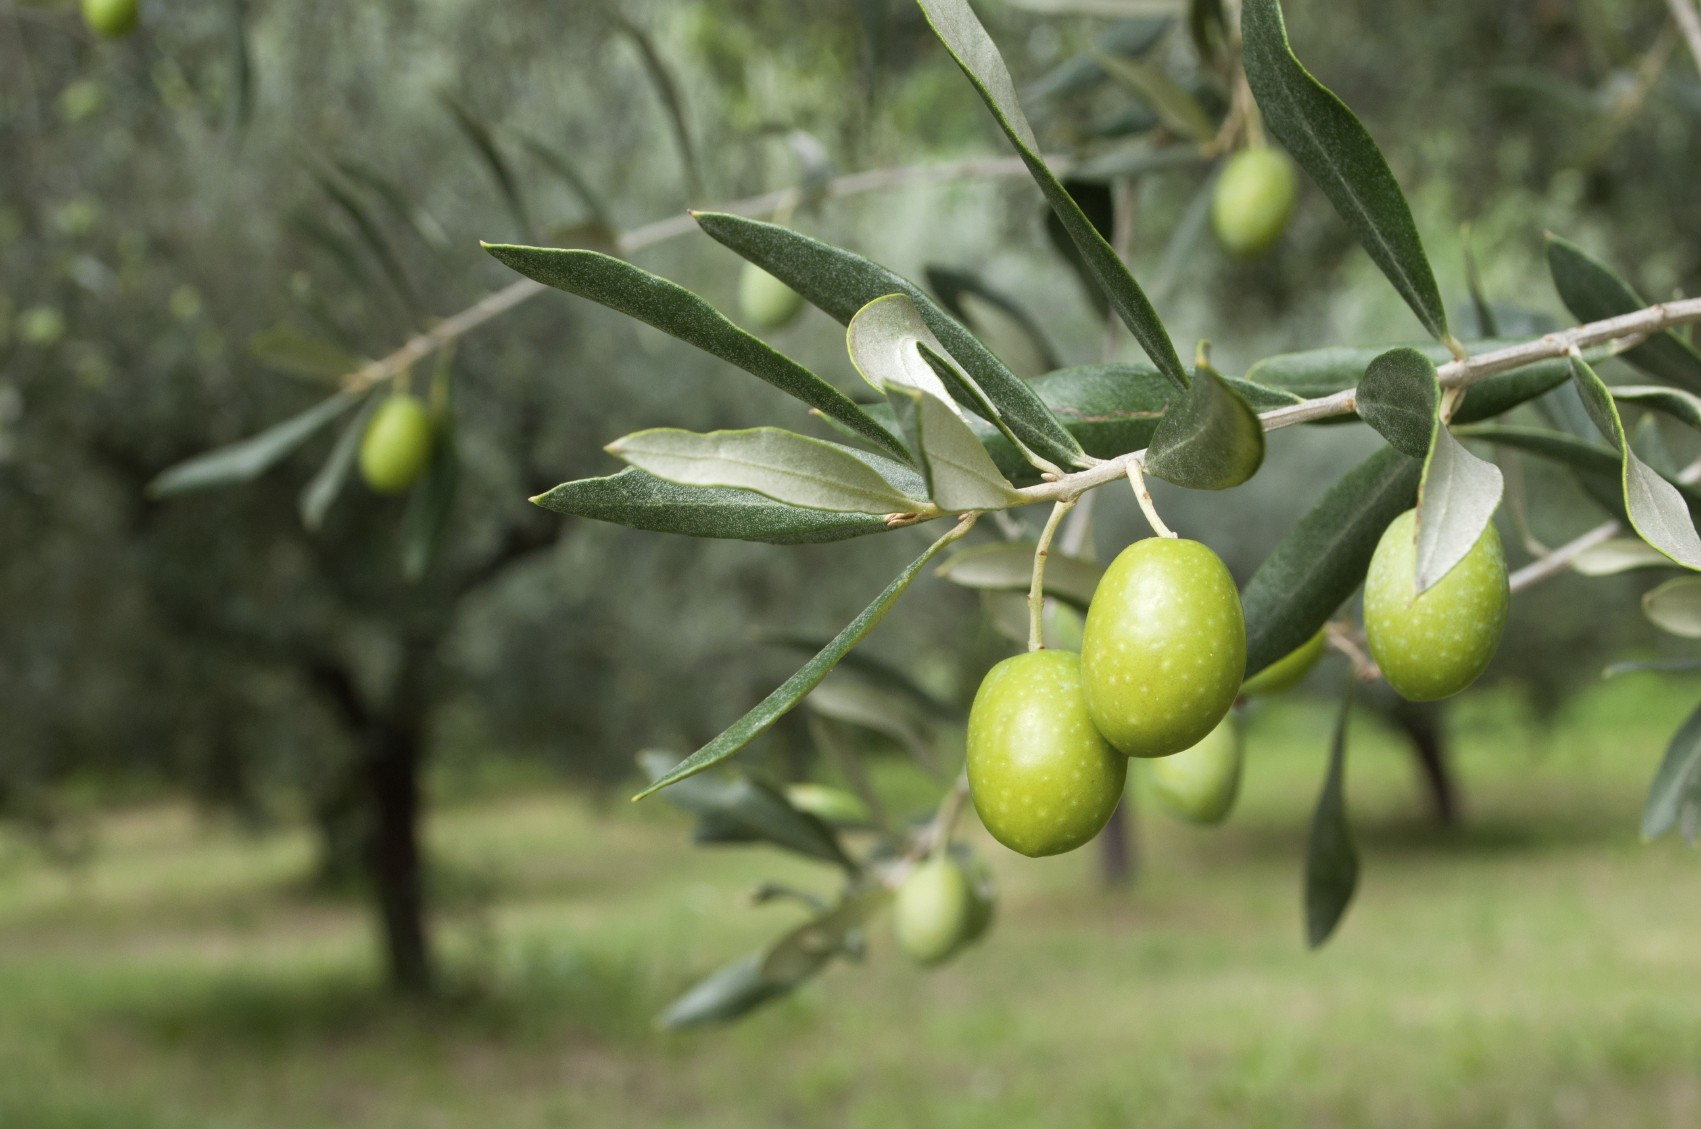 The olive harvest an ancient palestinian tradition the olive tree the symbol of palestinian culture buycottarizona Choice Image